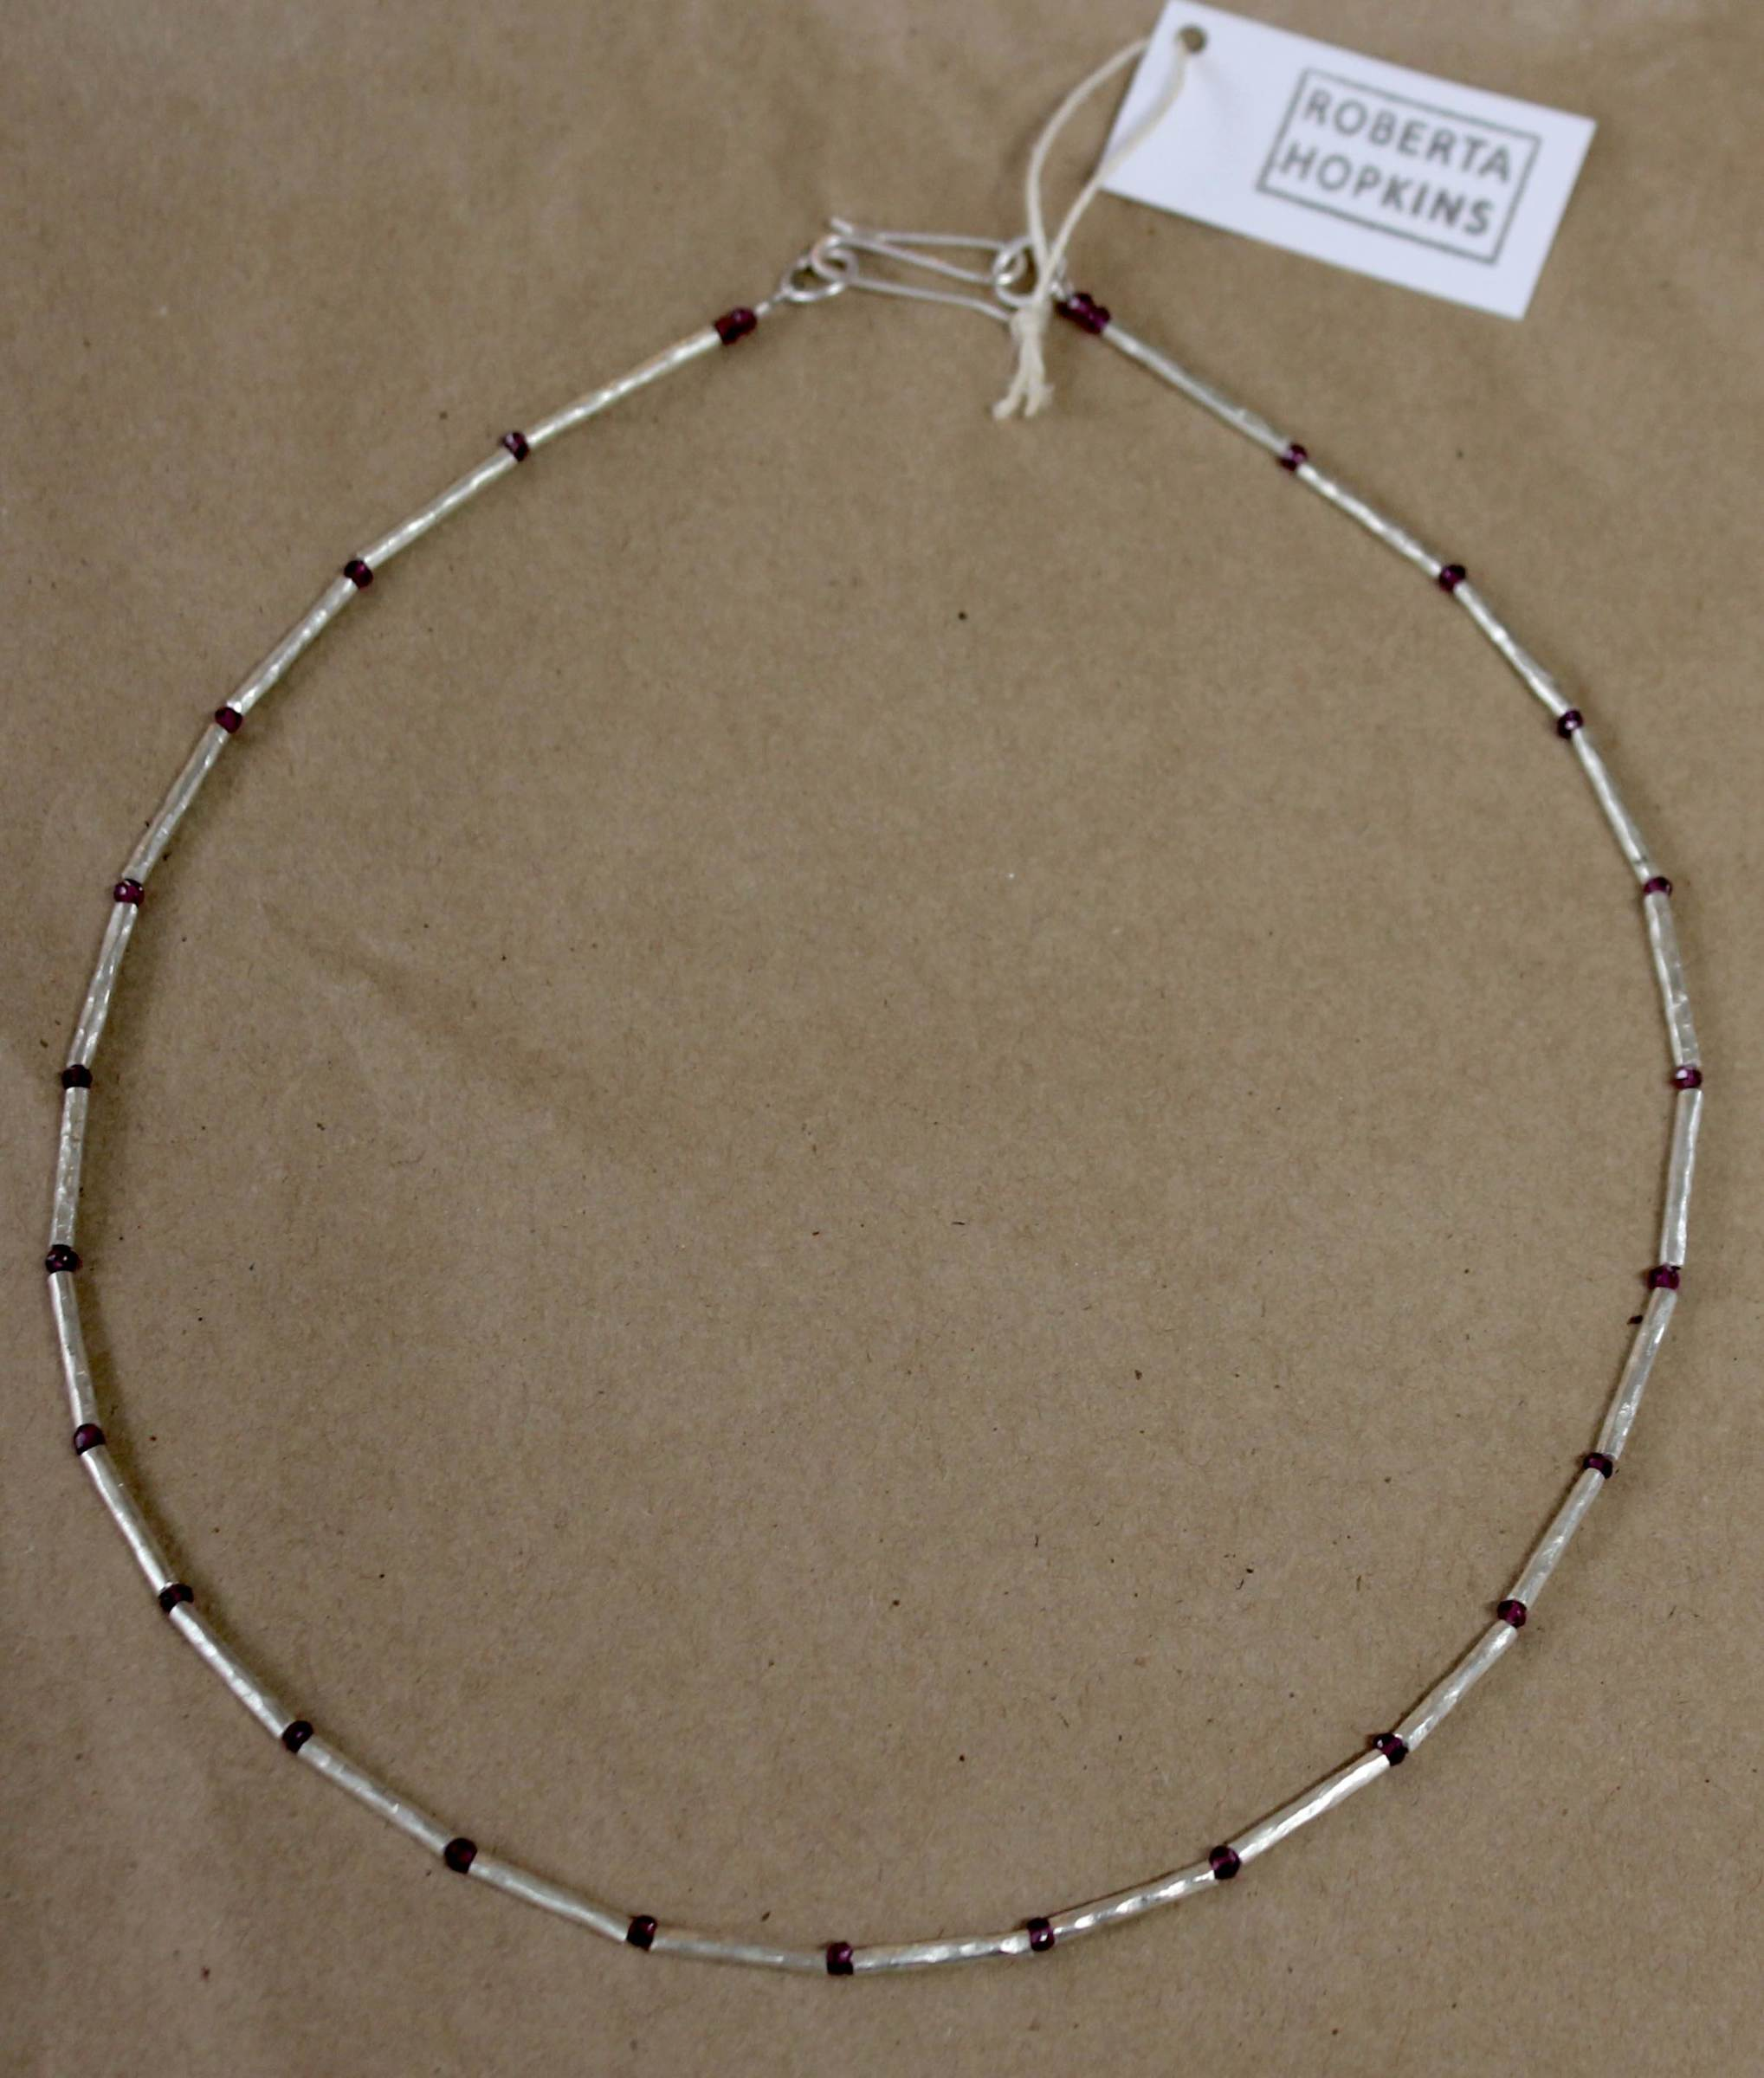 "<span class=""link fancybox-details-link""><a href=""/artists/148-roberta-hopkins/works/5843-roberta-hopkins-faceted-garnets-and-silver-twiggy-tubes-2018/"">View Detail Page</a></span><div class=""artist""><strong>Roberta Hopkins</strong></div> <div class=""title""><em>Faceted Garnets and Silver Twiggy Tubes</em>, 2018</div> <div class=""medium"">sterling silver</div><div class=""copyright_line"">£ 13.50 x 10 Months, OwnArt 0% APR</div>"